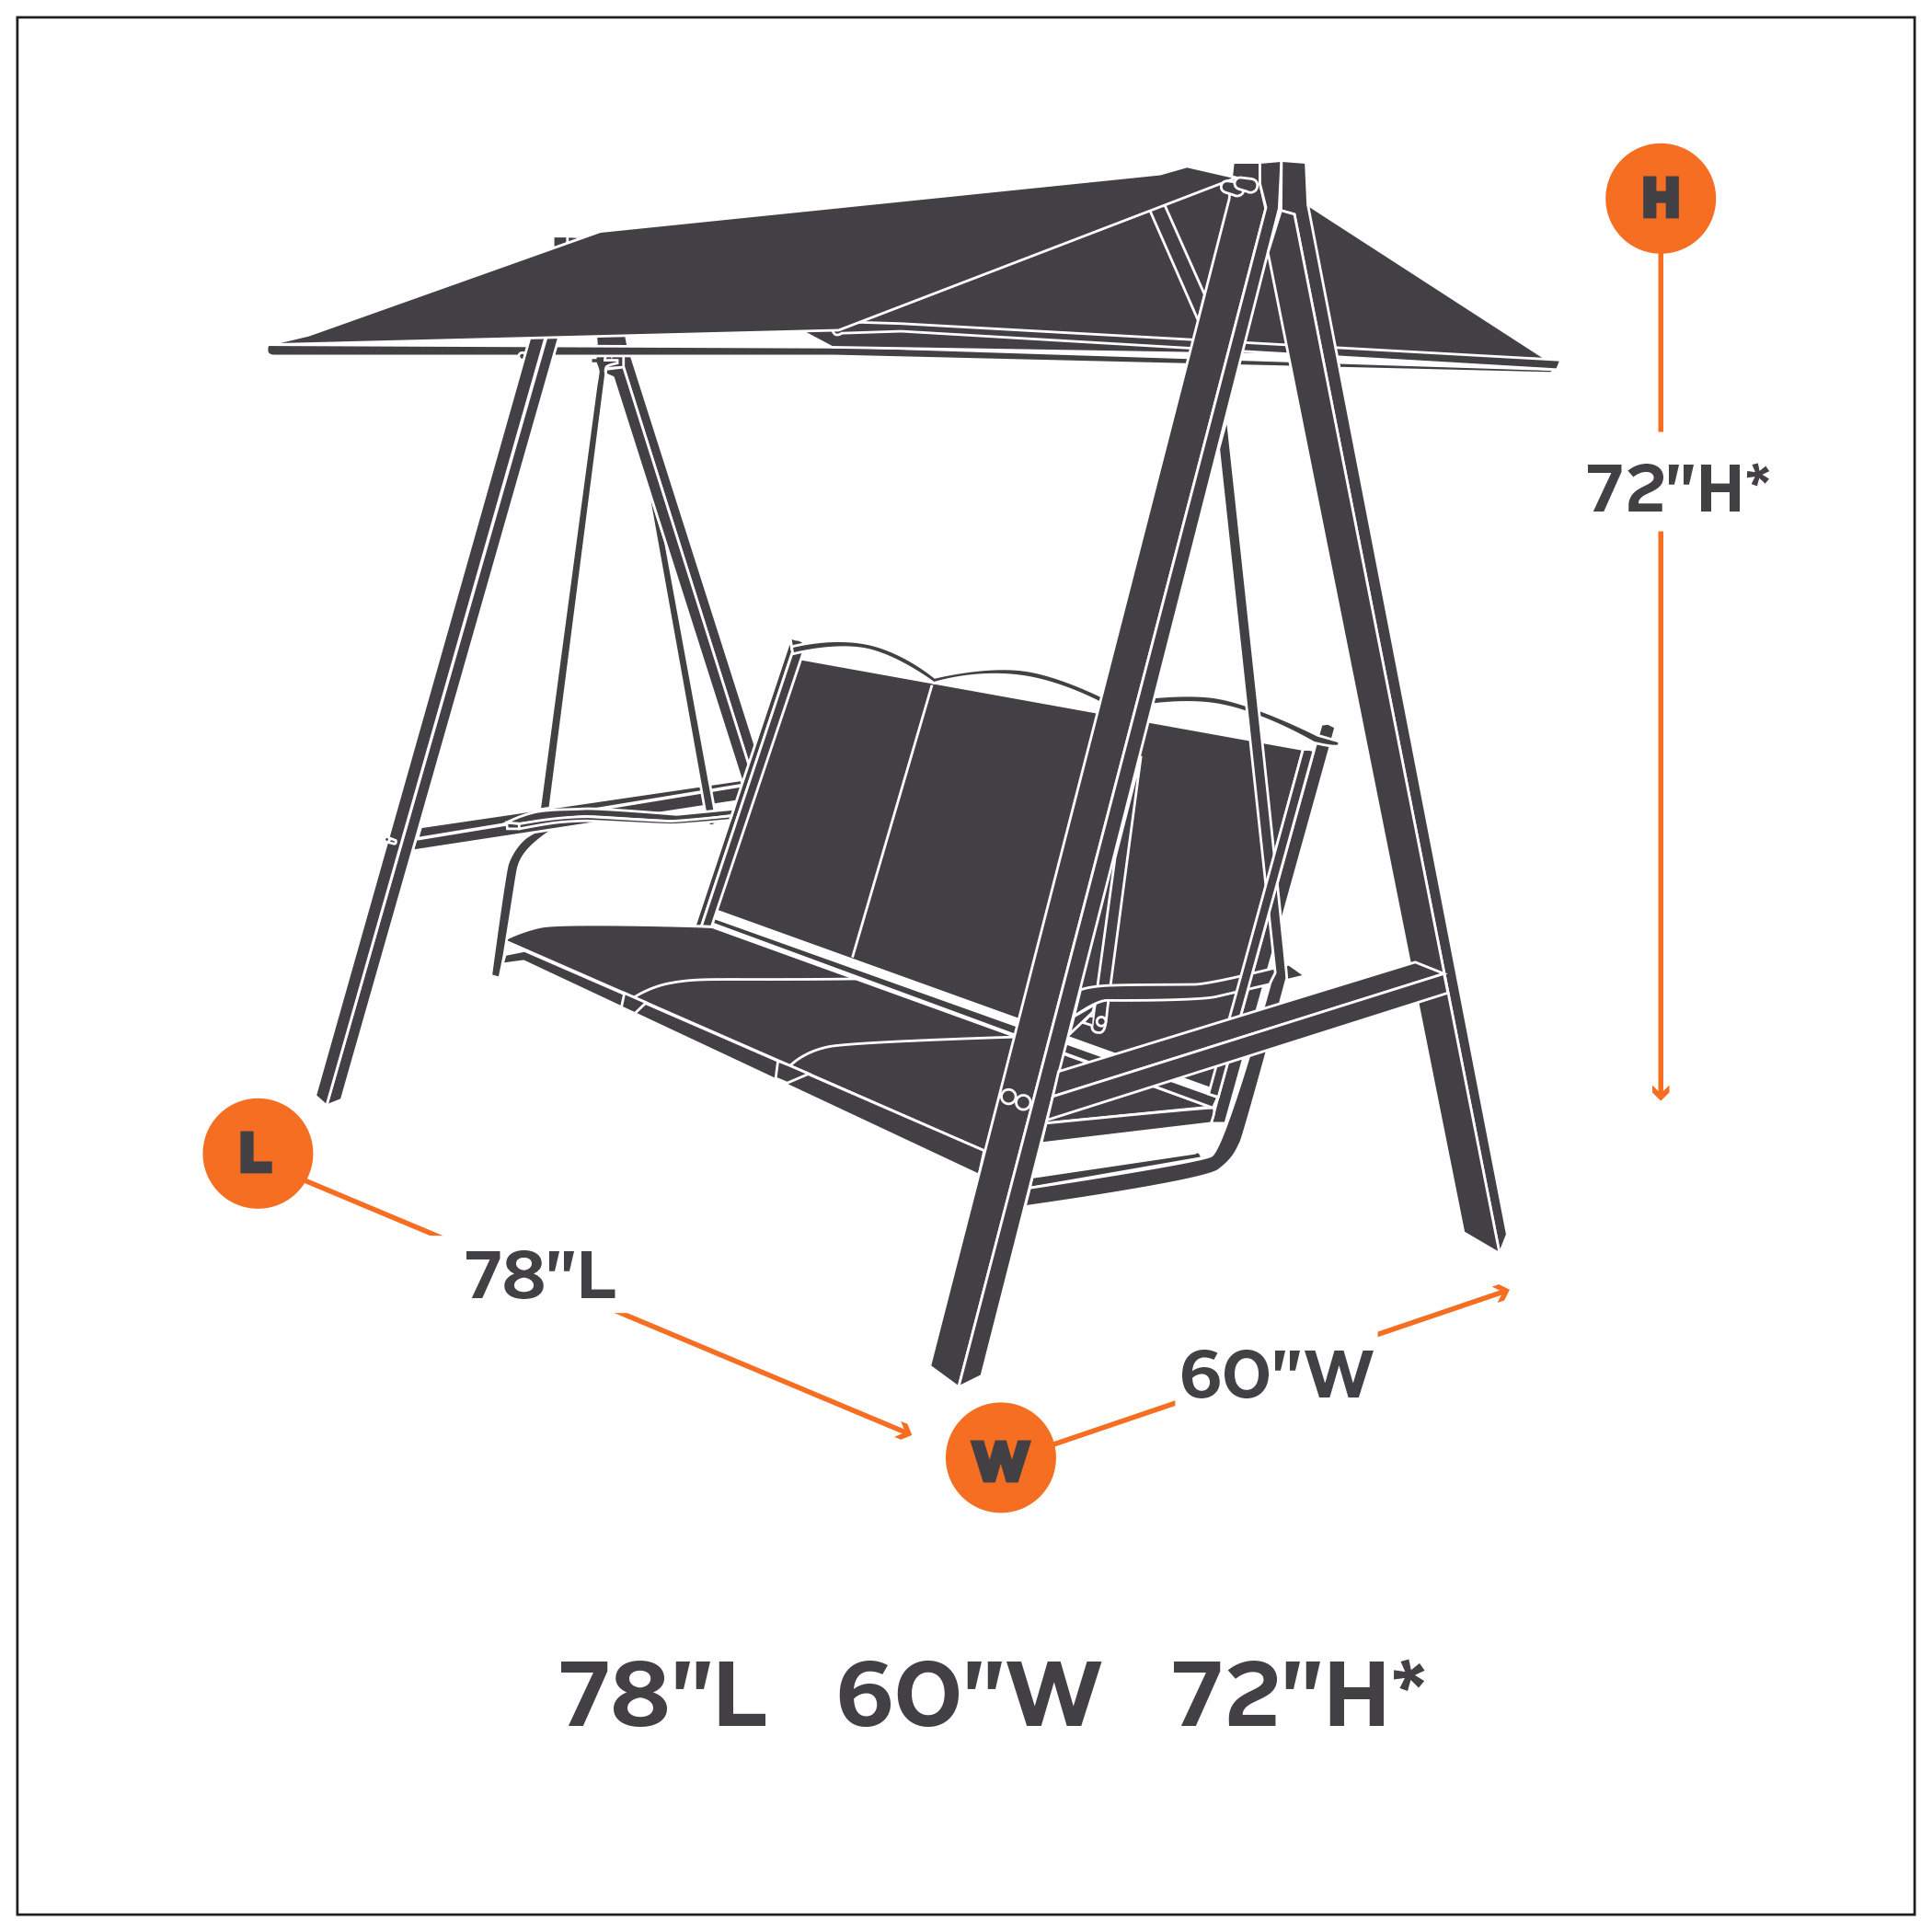 Outdoor Swing Parts : Amazon classic accessories ravenna canopy swing cover